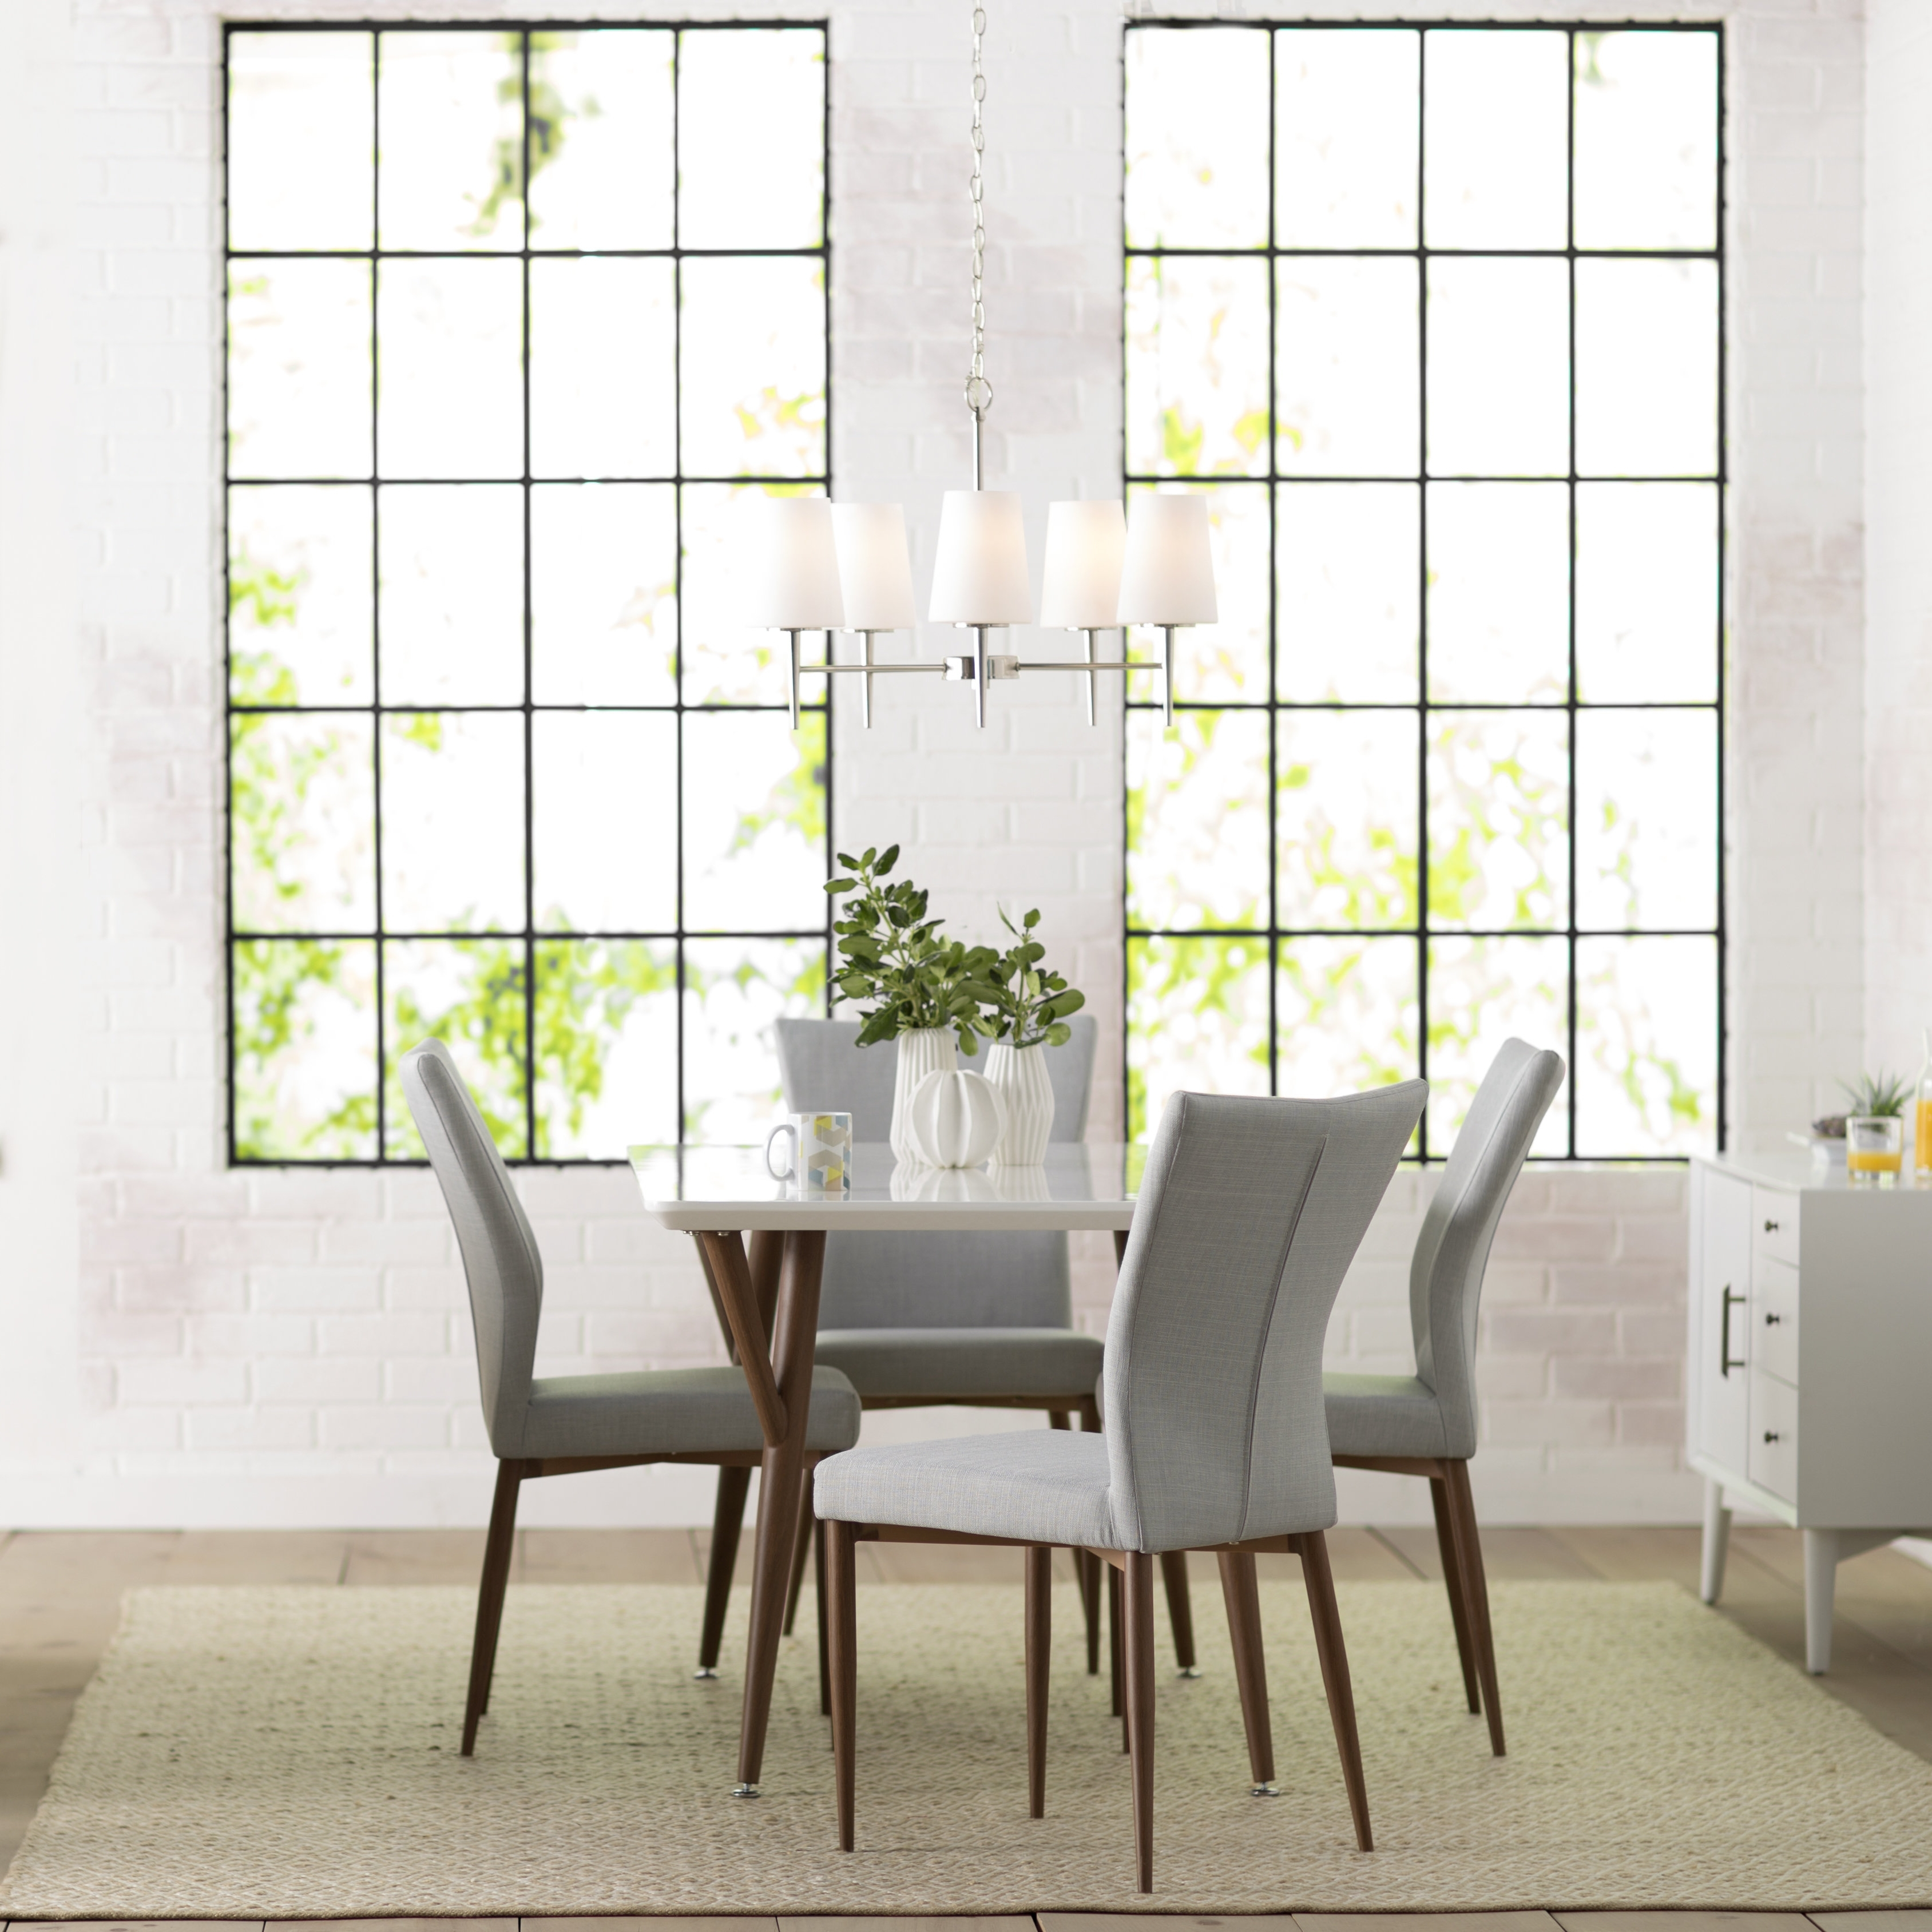 Wayfair Intended For Latest Rio Dining Tables (View 23 of 25)